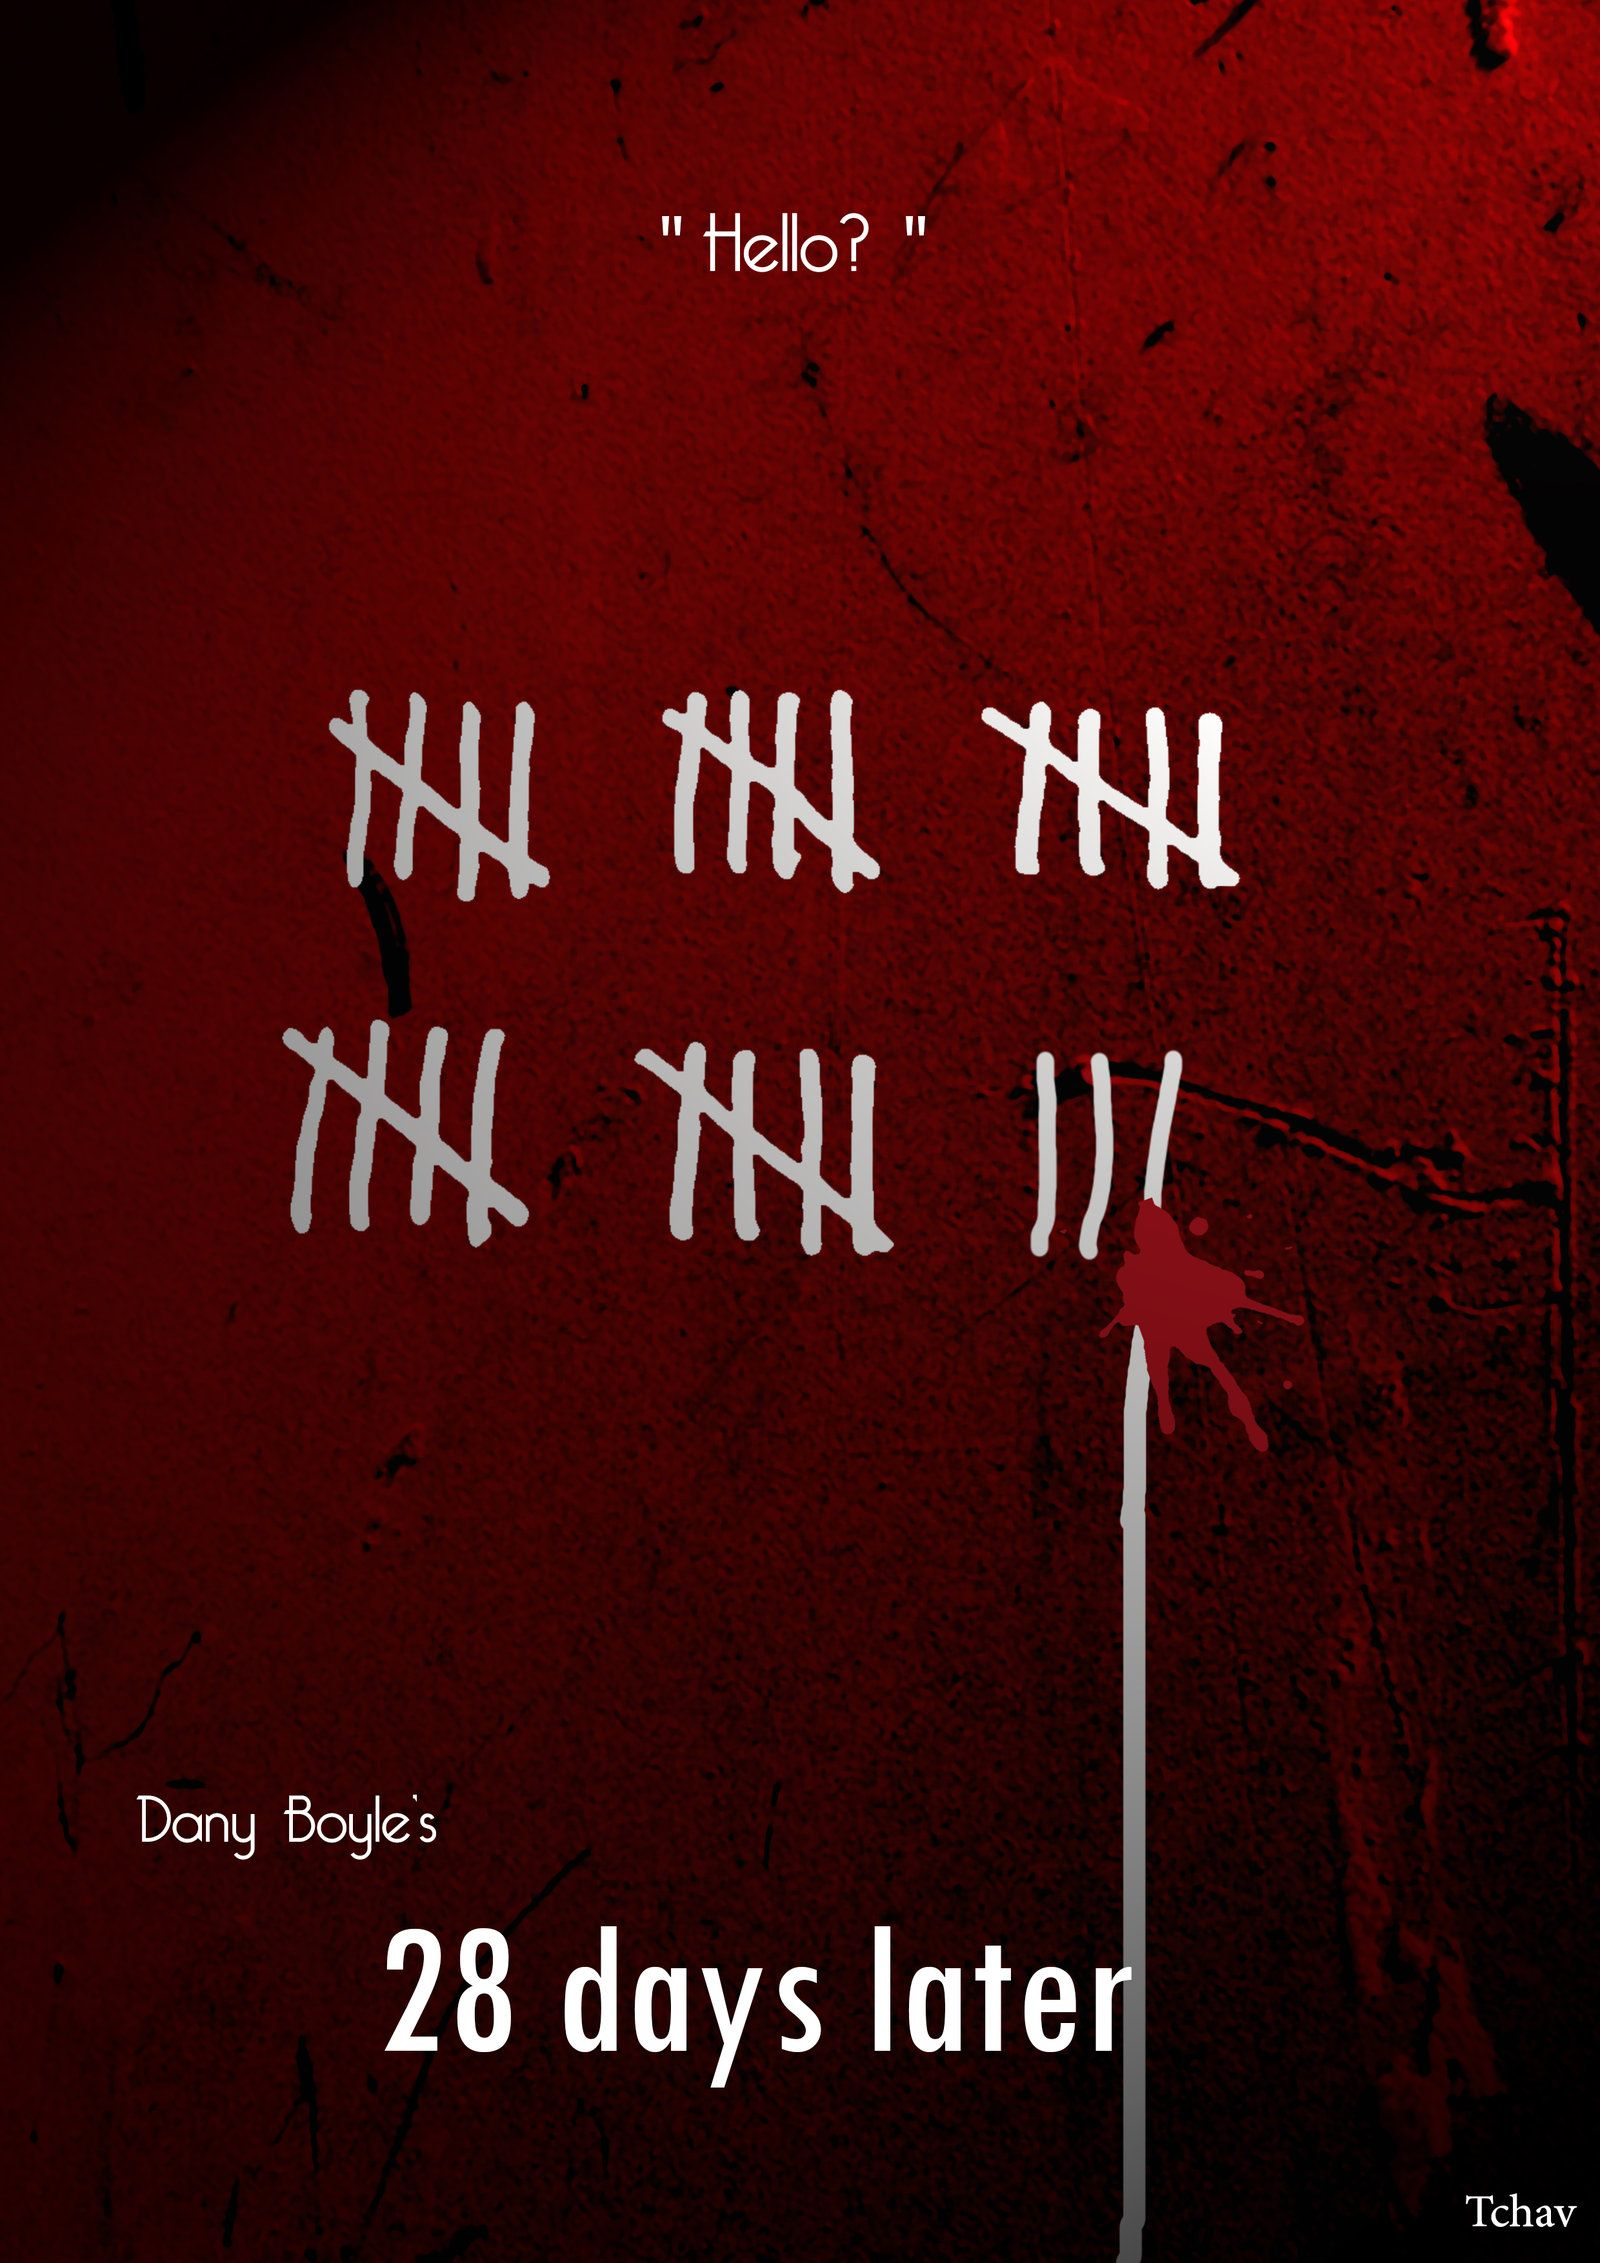 28 Days Later Minimalist Poster By Tchavdeviantartcom On Imo Z10 Fortune Deviantart